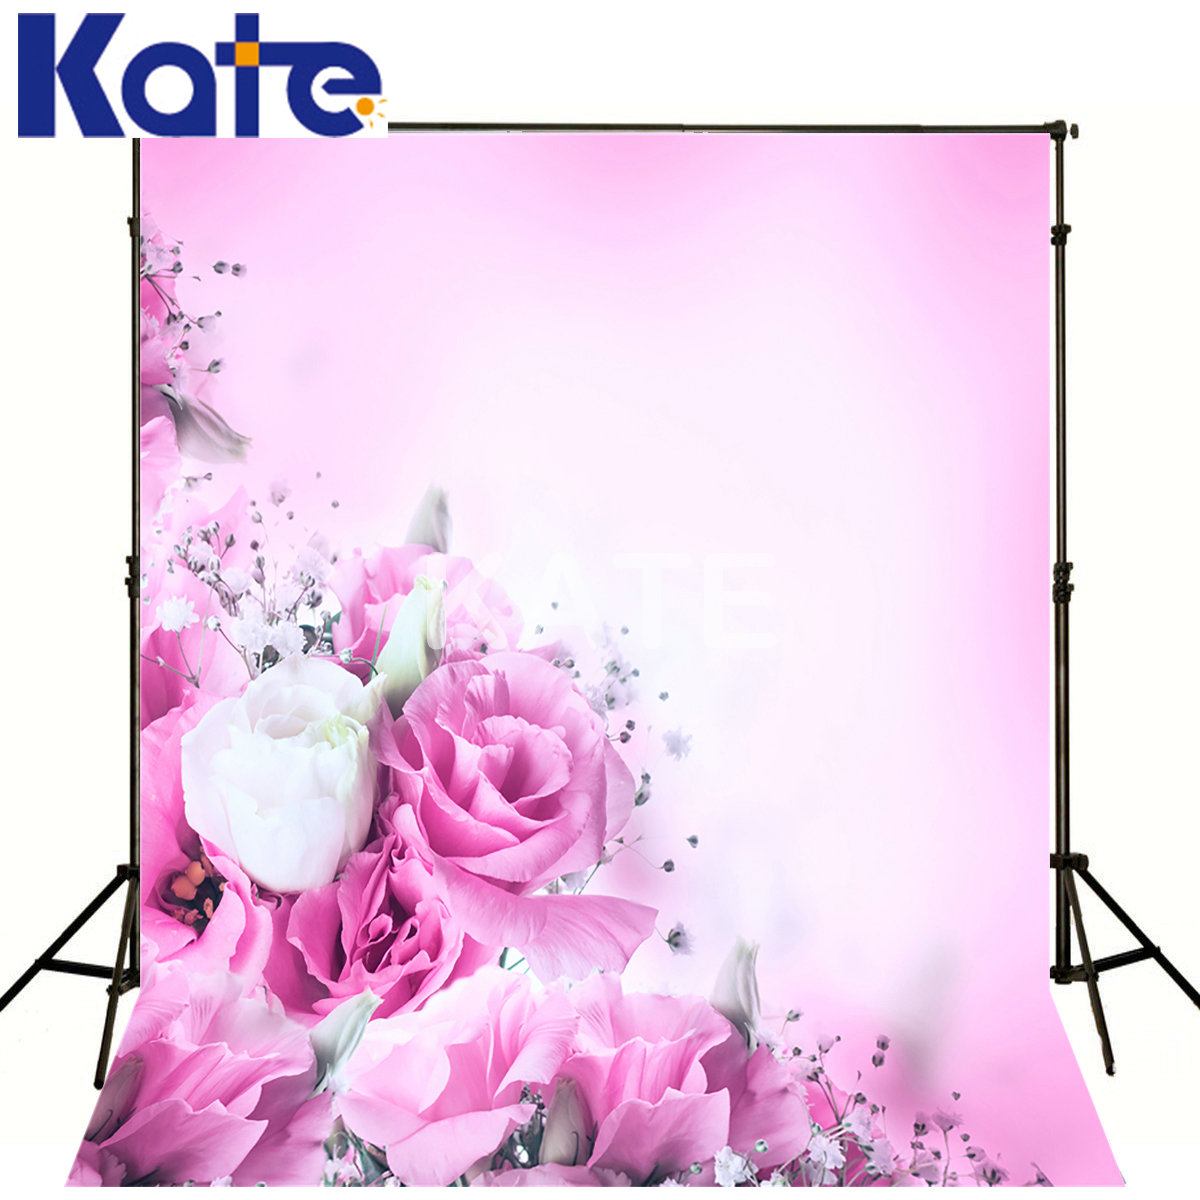 Kate Photography Background San Valentin Backdrops Valentines Day Kids Backdrop Pink Flower Backdrop for Wedding Bokeh Backdrop kate flower wall pink backdrop romantic wedding photography backdrops spring photography backdrops large size seamless p